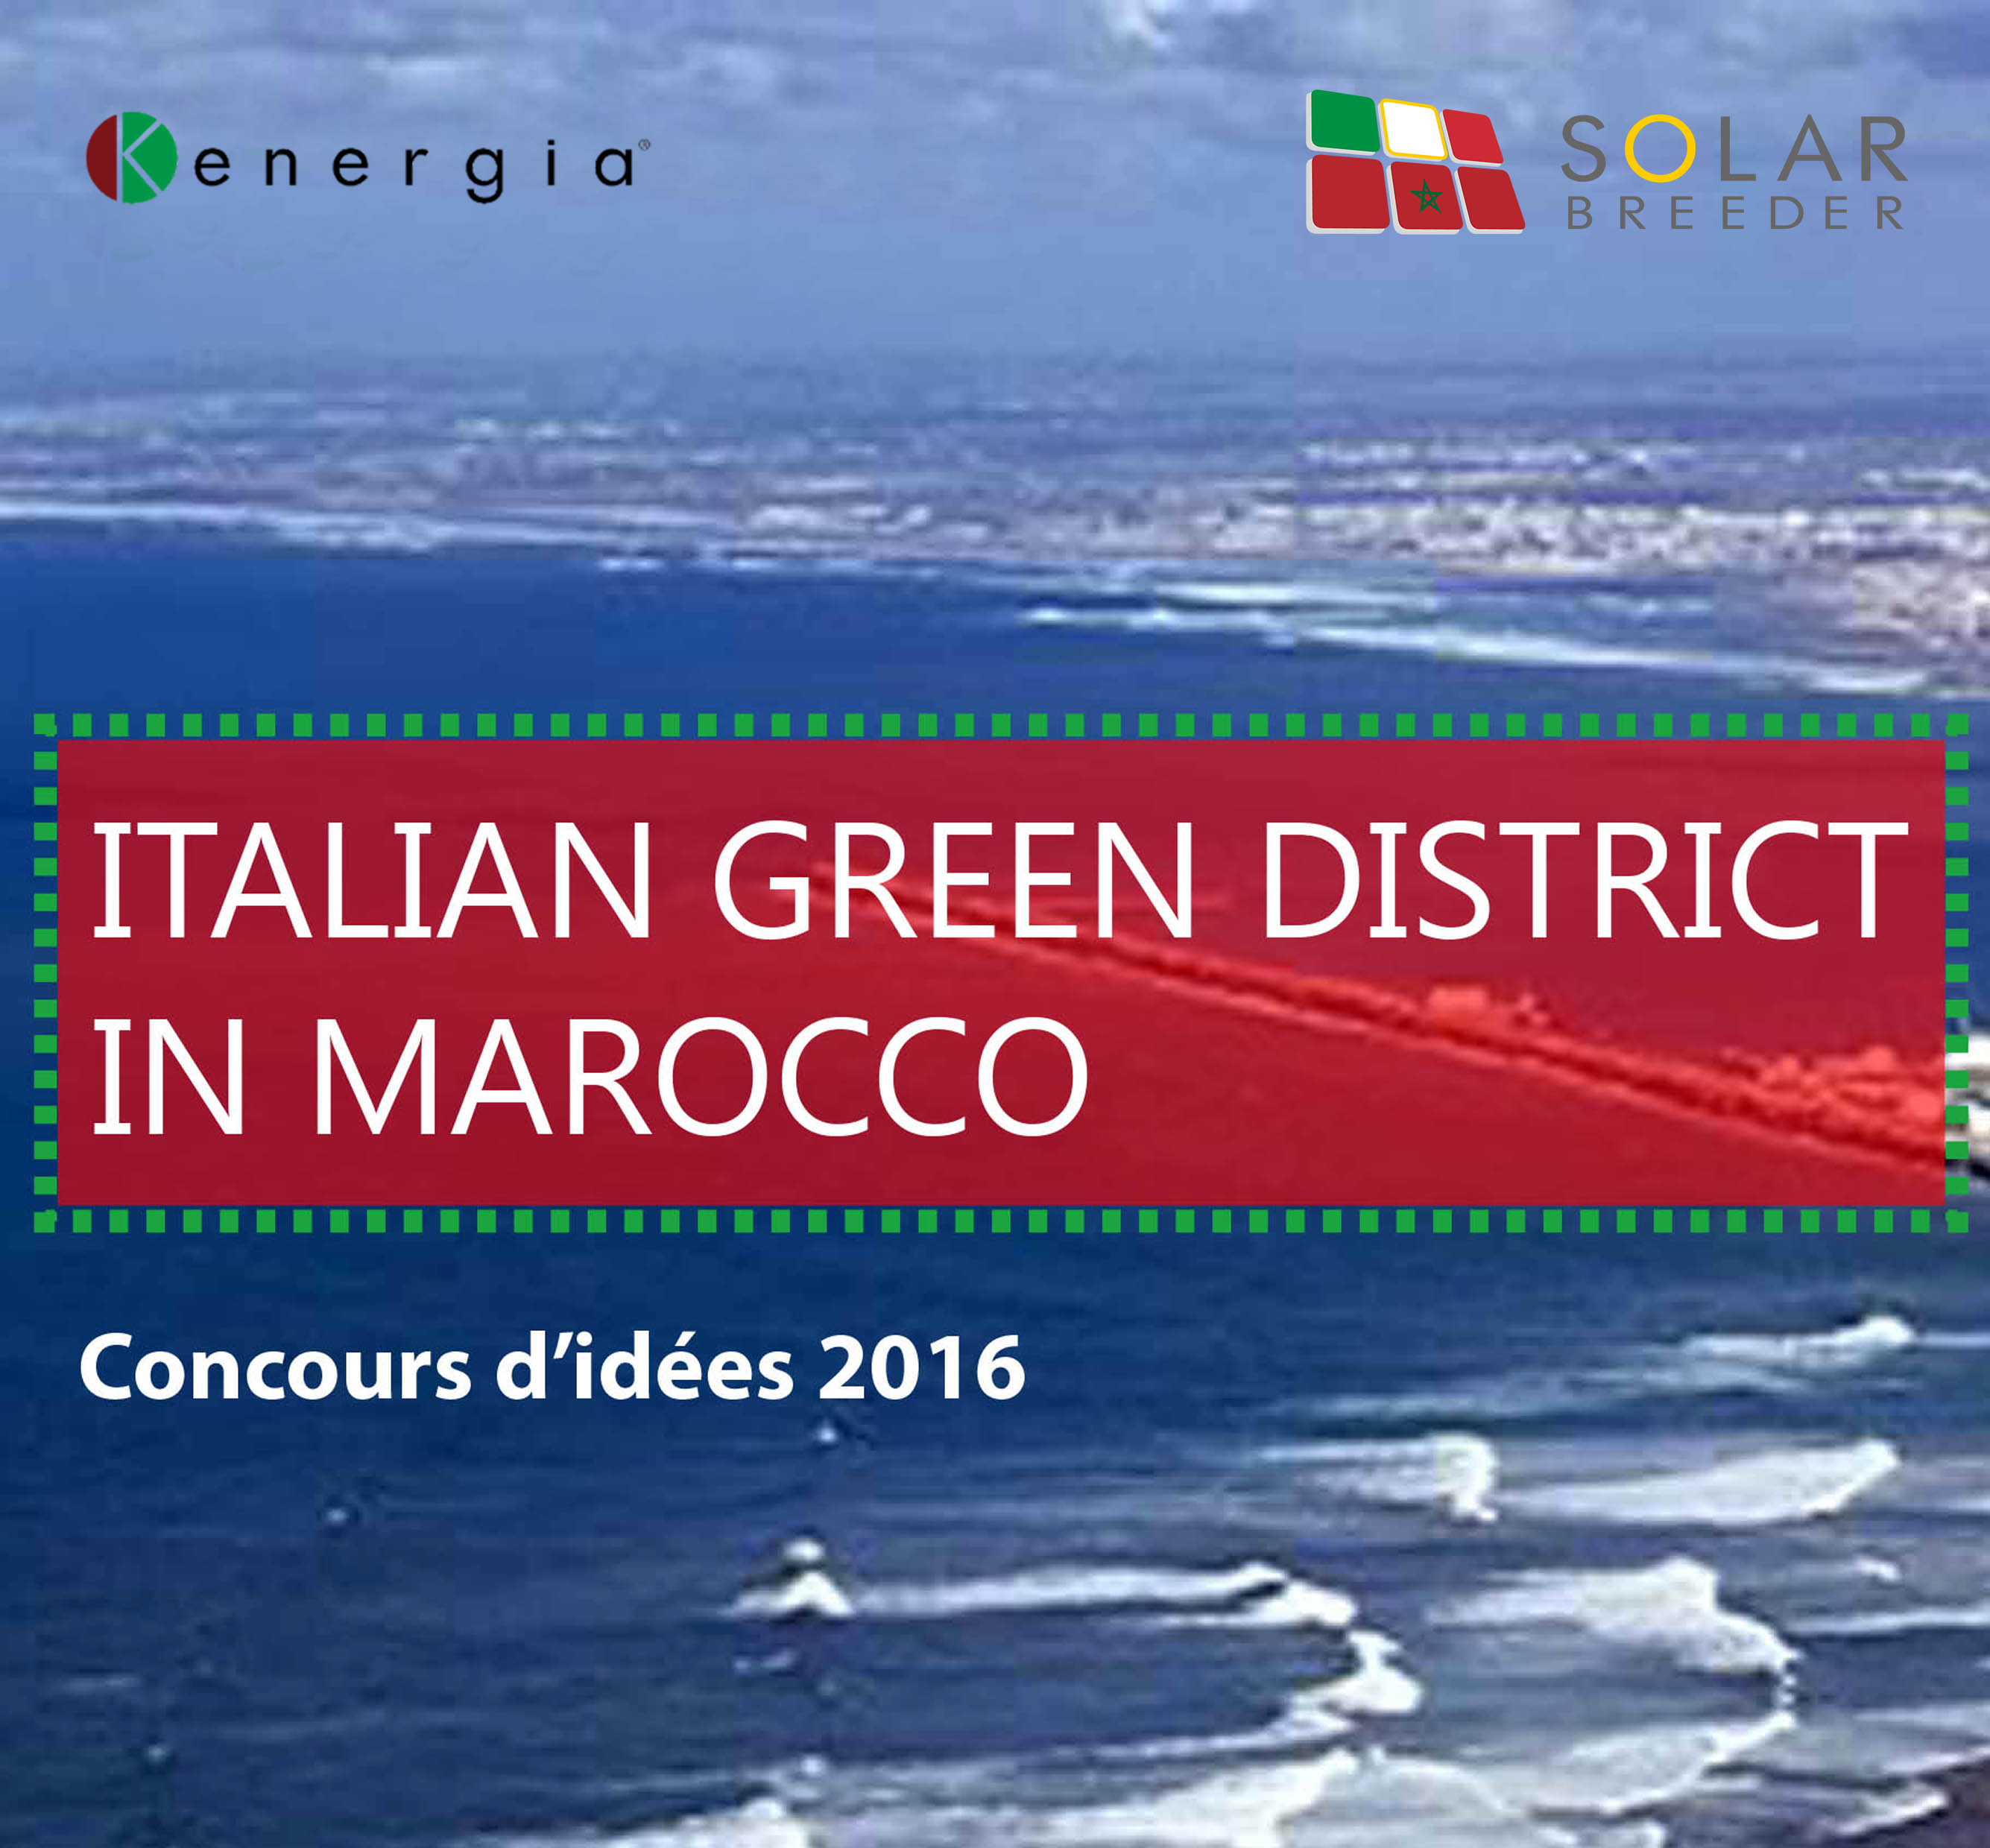 Kenergia lancia il Concorso di Idee Italian Green District